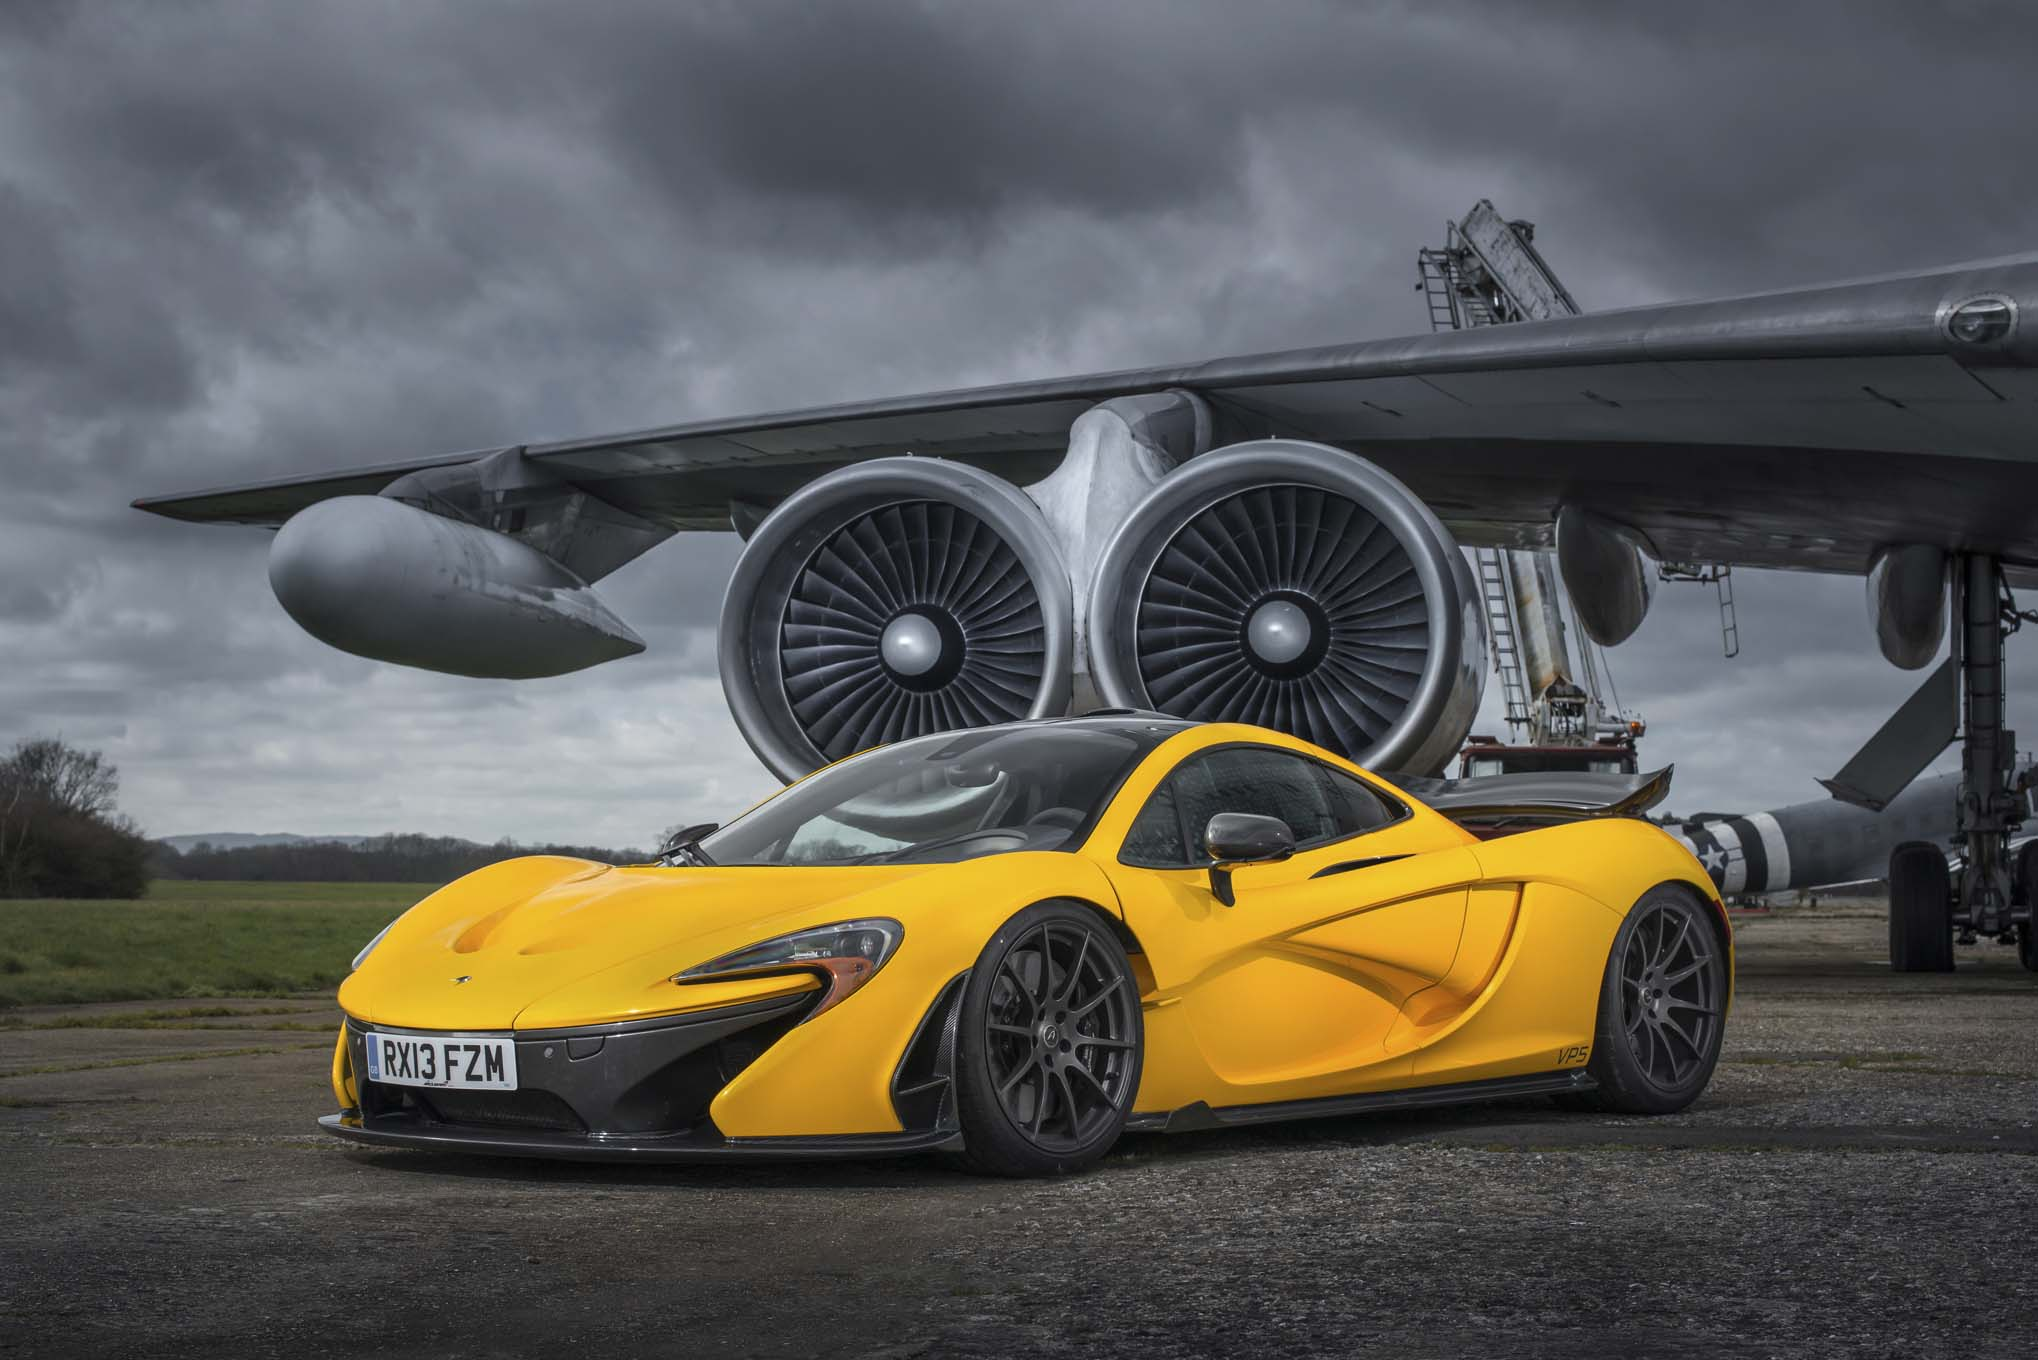 2014-mclaren-p1-yellow-front-three-quarters.jpg